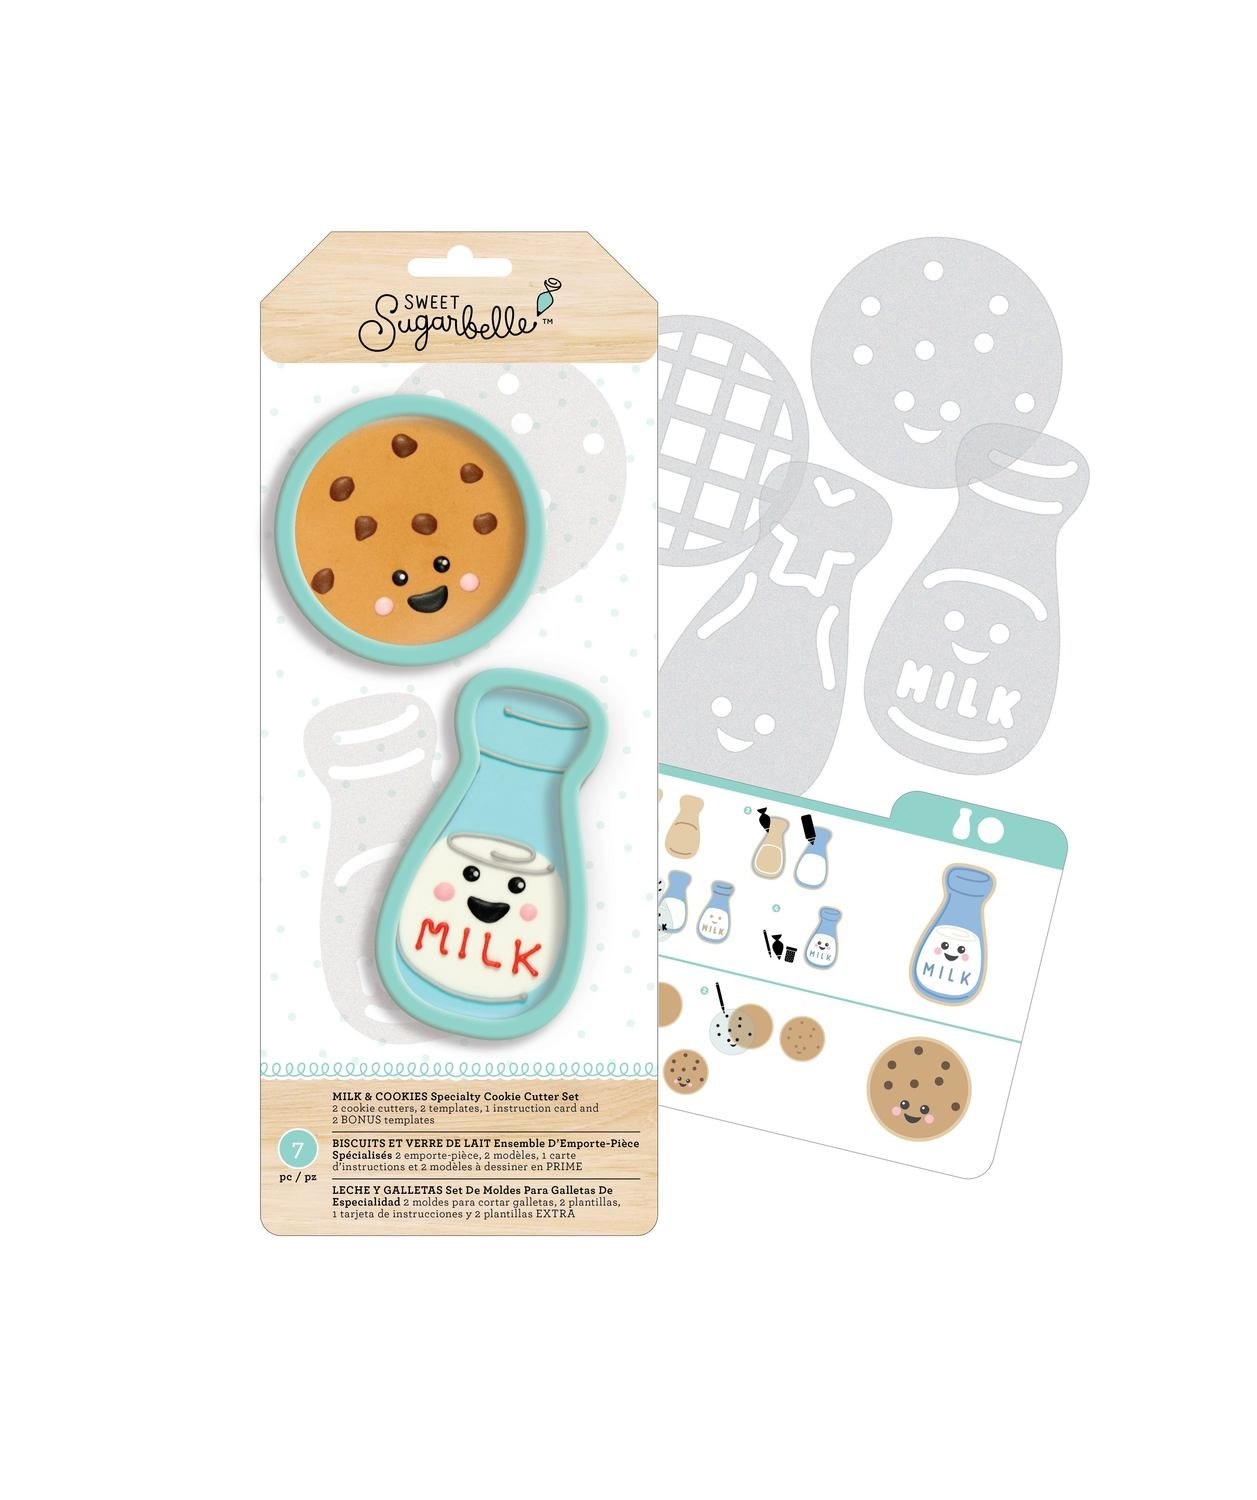 Sweet Sugarbelle Cookies/Milk Set